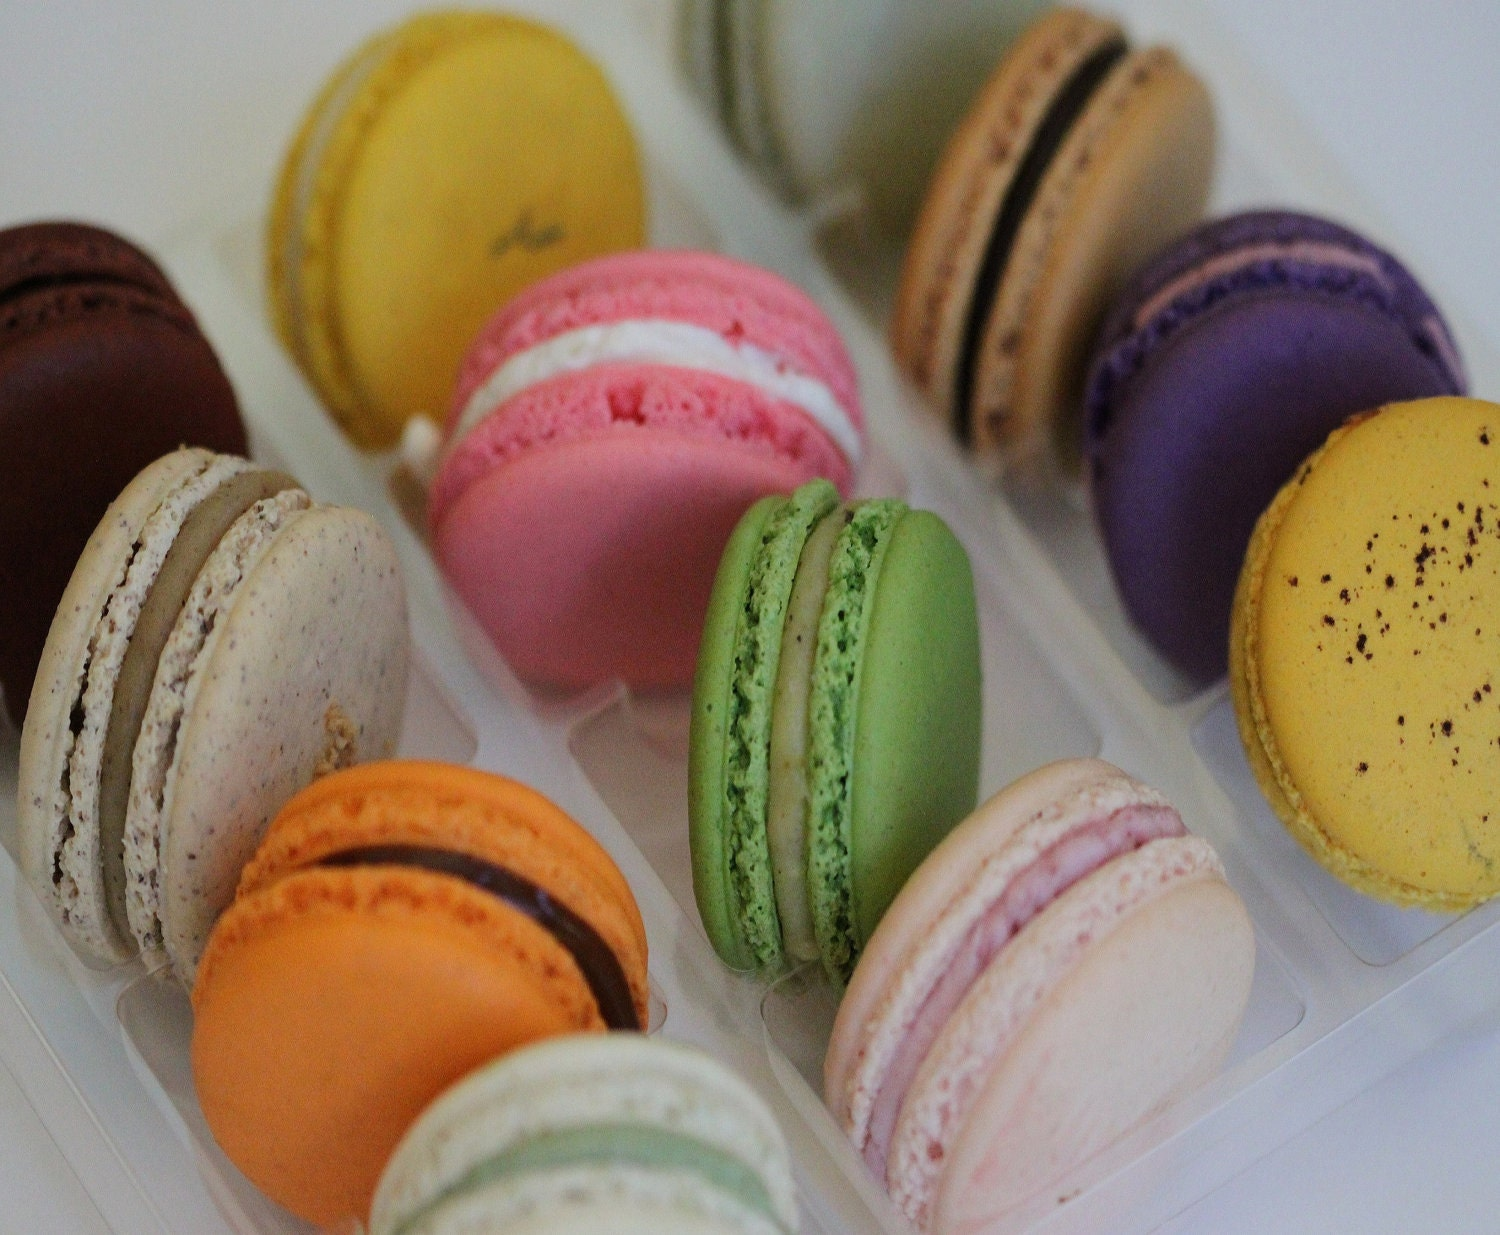 Premium Authentic French Macarons - Twelve piece box - nicoleleechocolates